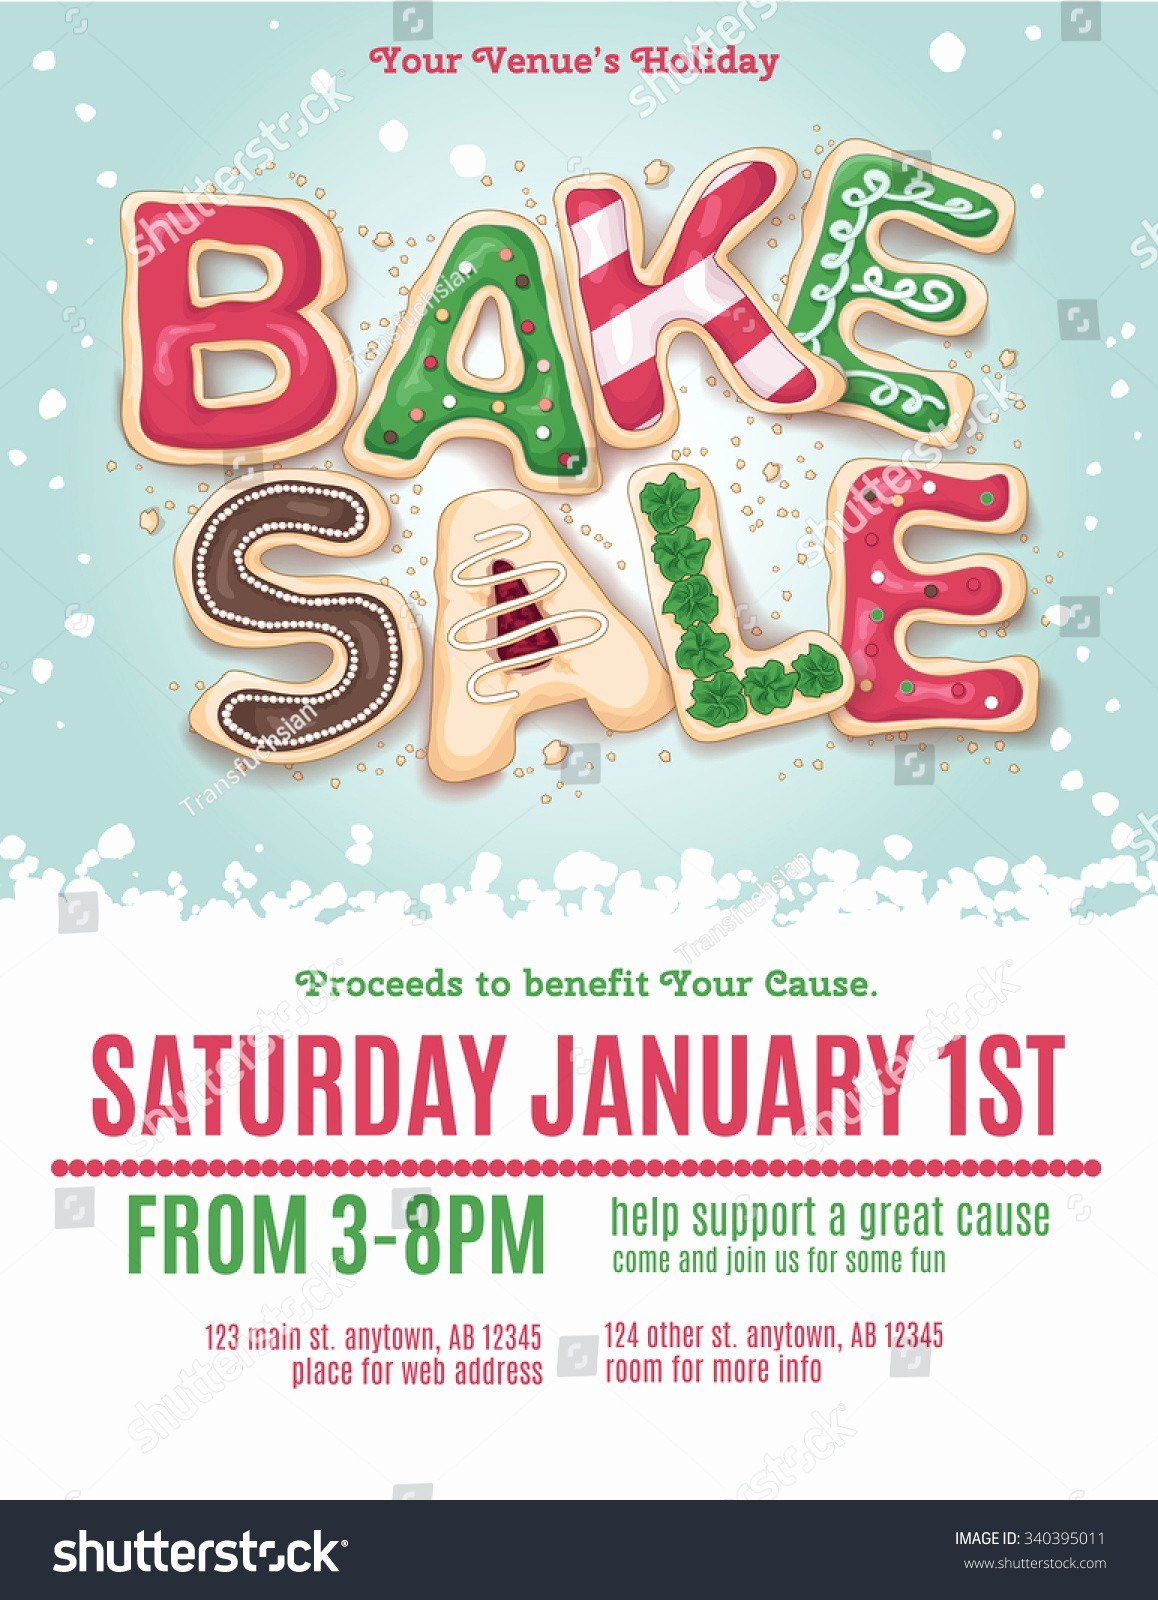 Bake Sale Flyer Template Microsoft Awesome Christmas Holiday Bake Sale Flyer Template Stock Vector